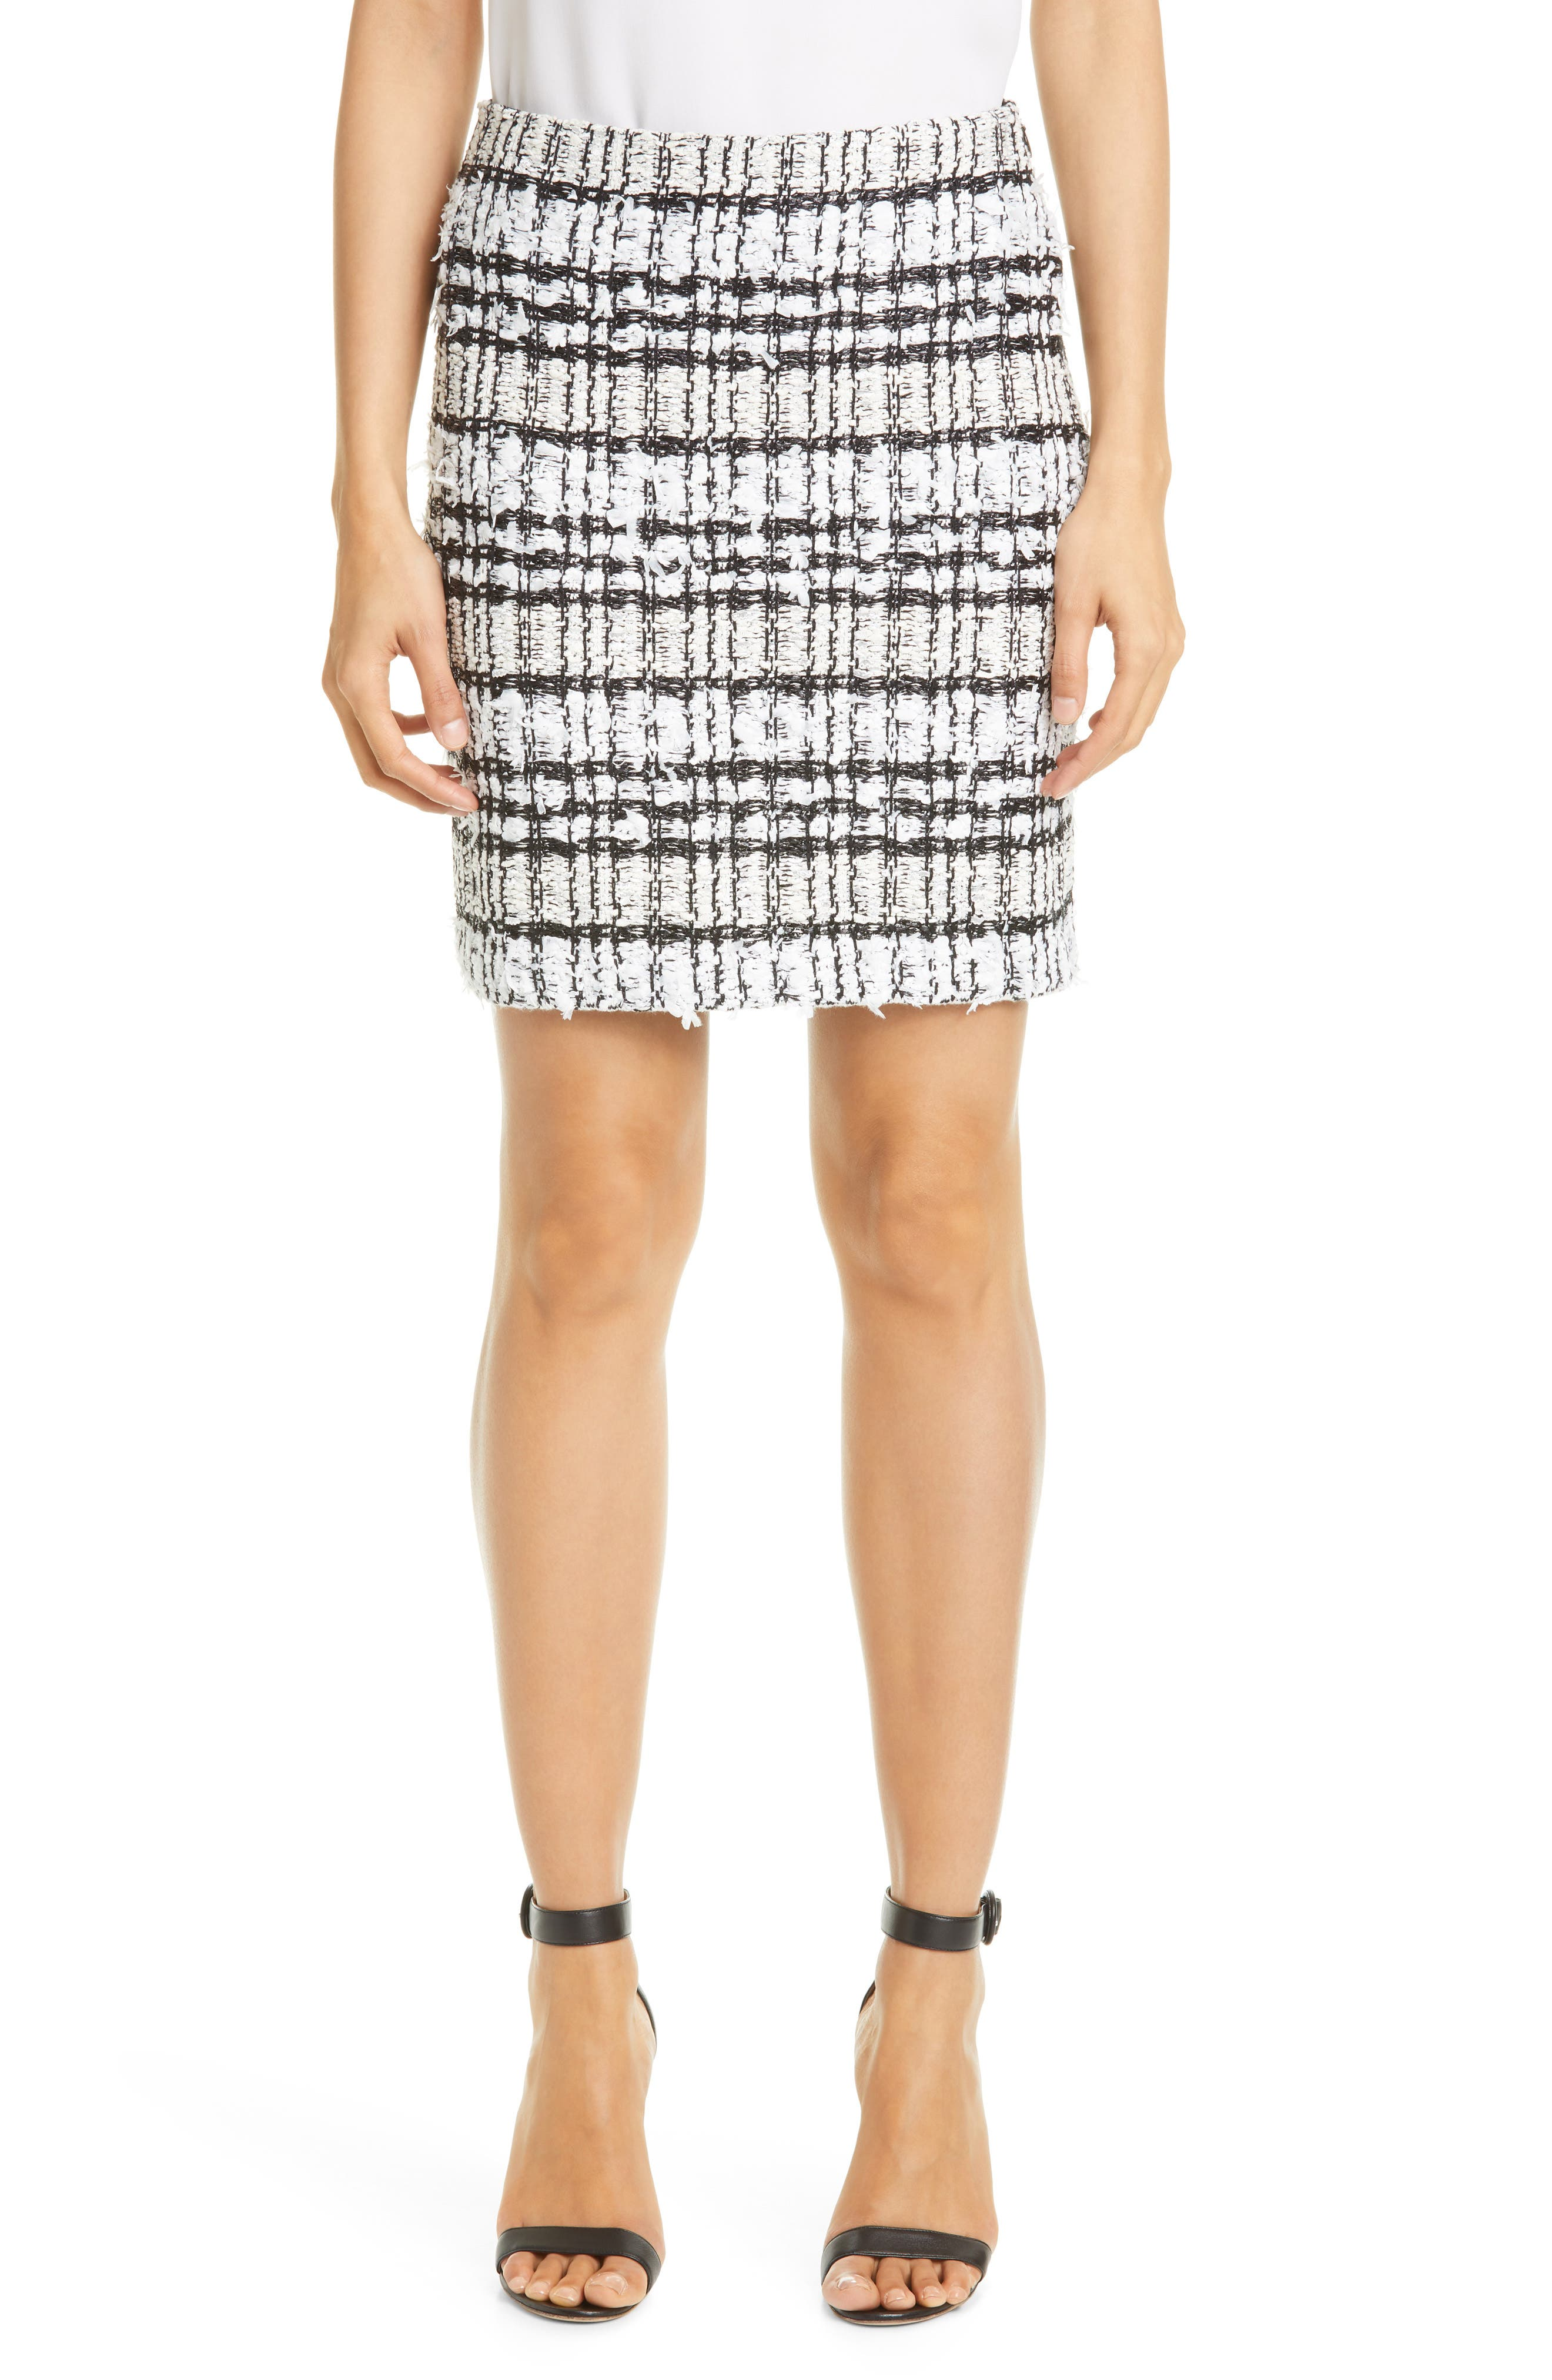 This slim skirt makes an urbane statement with richly textured black-and-white yarns knit into a contemporary plaid pattern. Style Name: St. John Collection Artisanal Plaid Skirt. Style Number: 6045070. Available in stores.